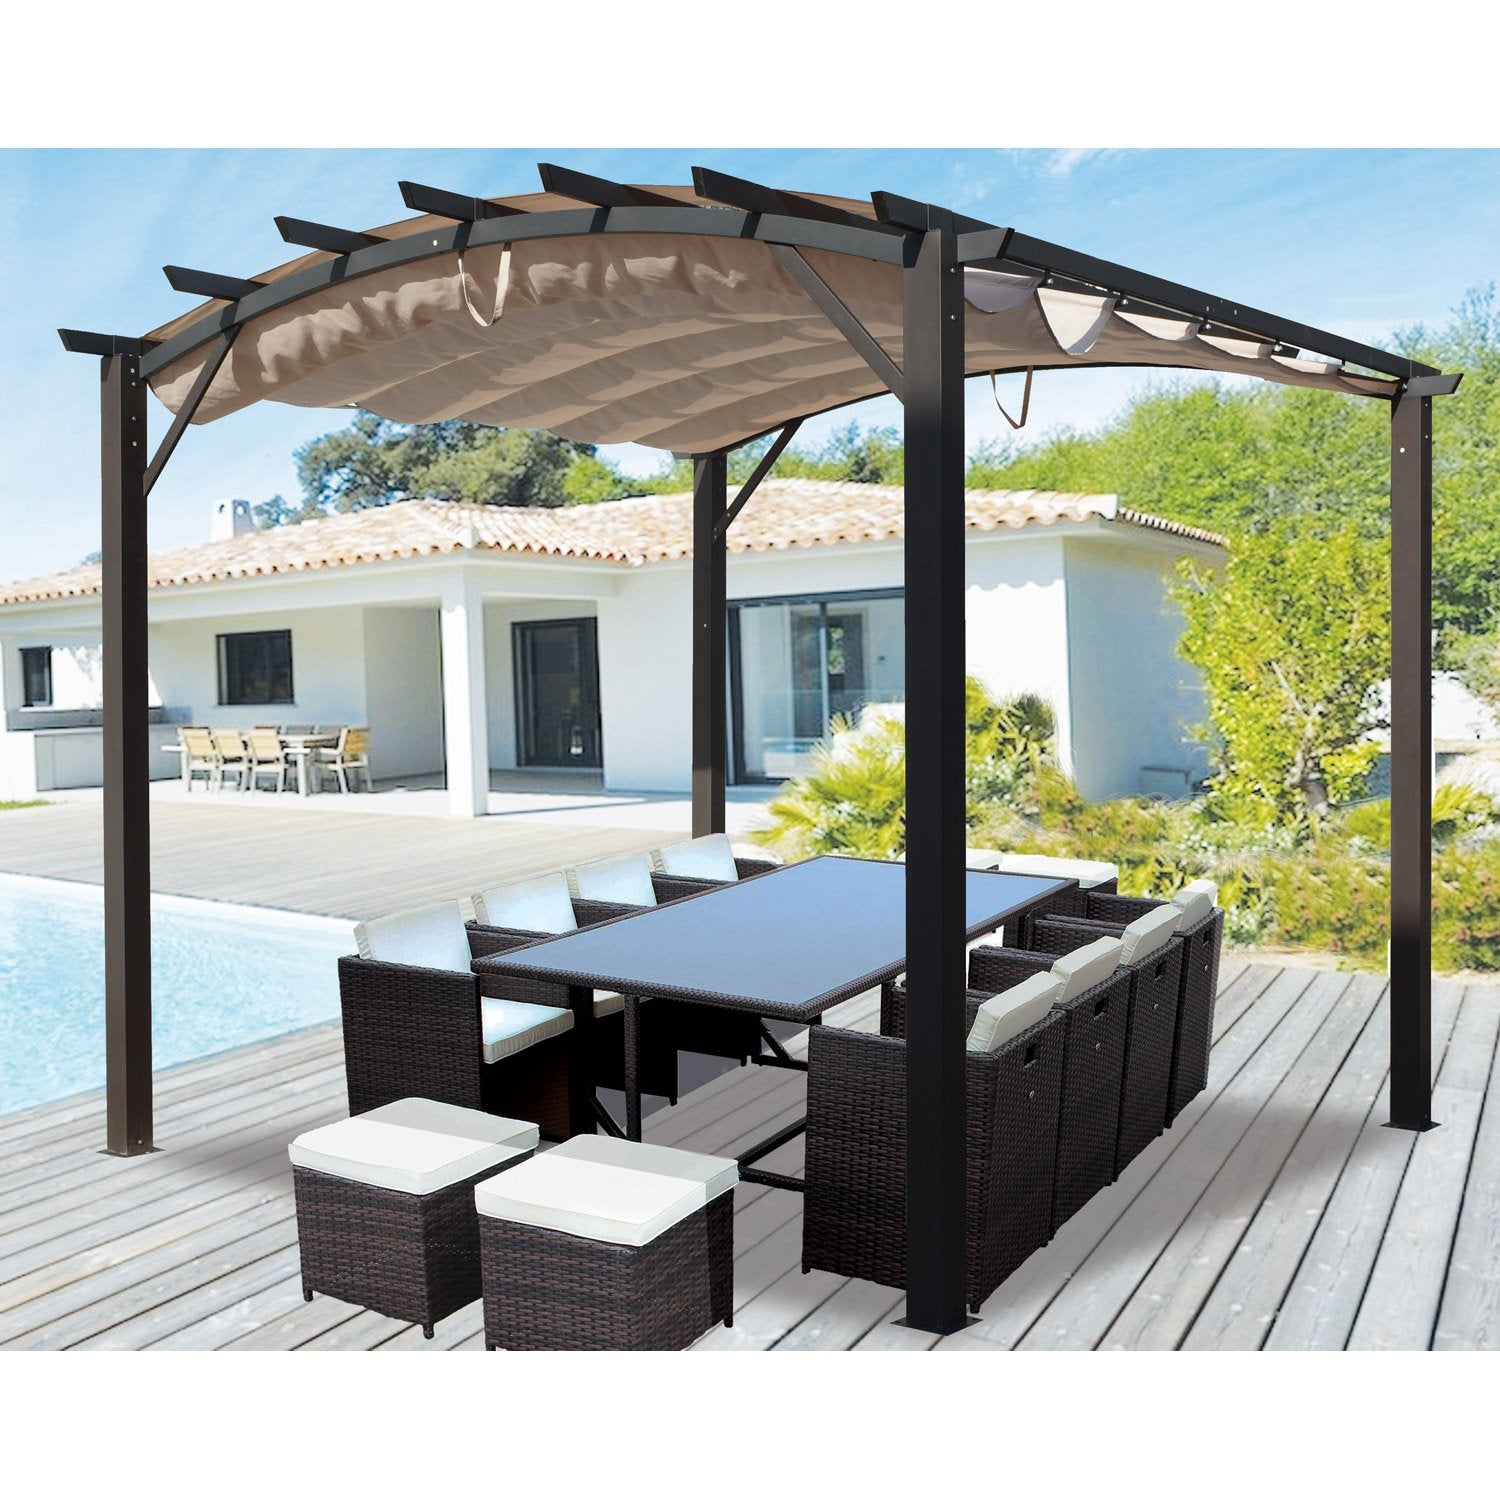 pergola pour terrasse ou balcon per 3433 ar acier et aluminium gris anthracite leroy merlin. Black Bedroom Furniture Sets. Home Design Ideas